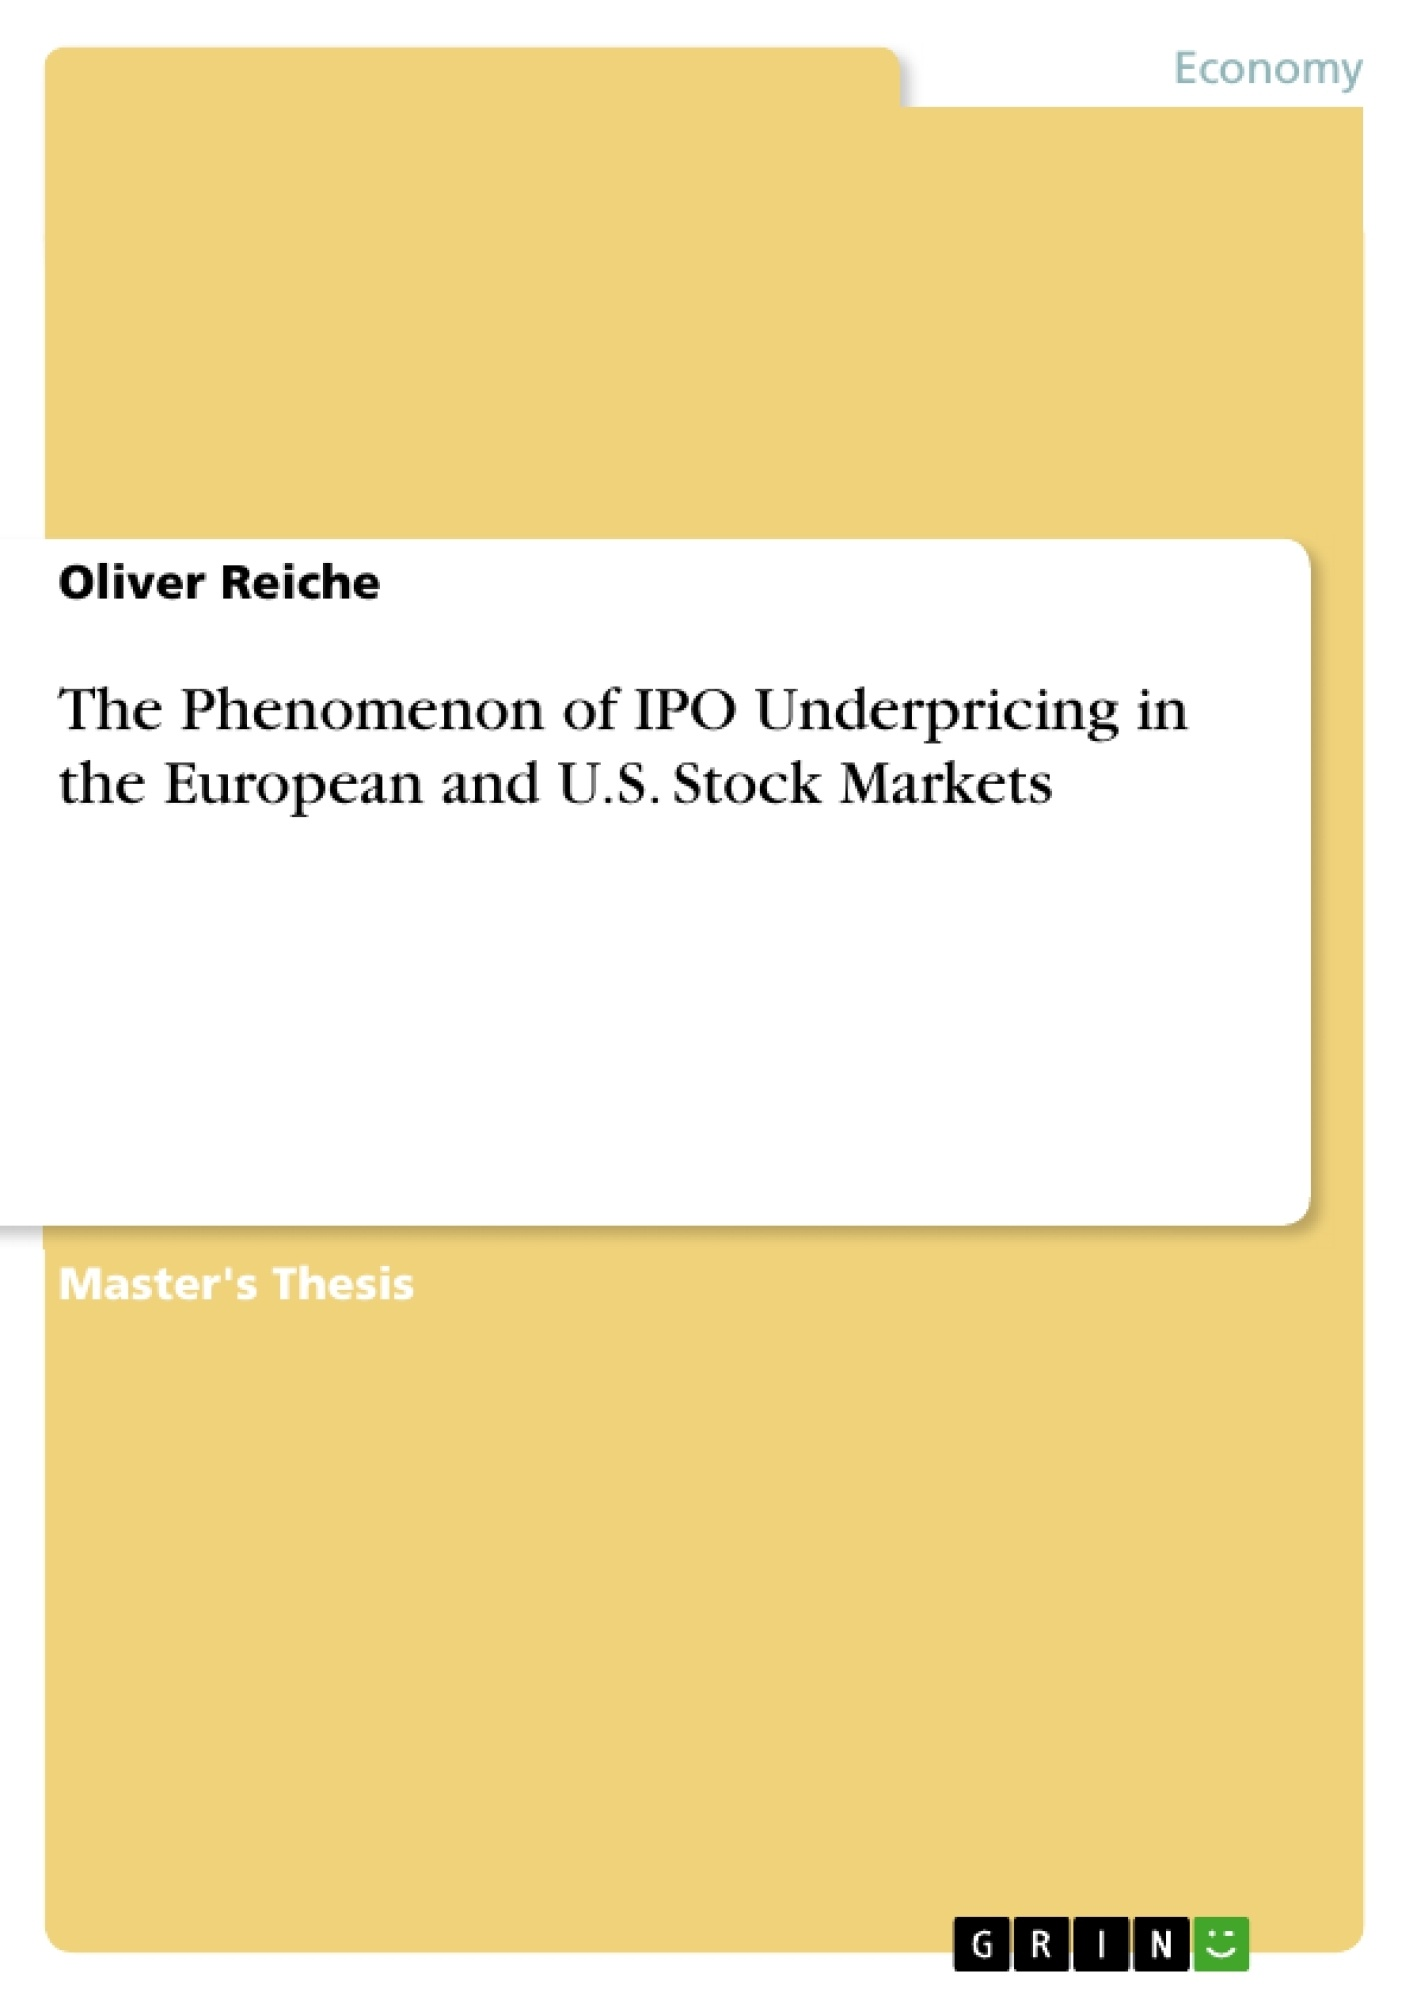 Title: The Phenomenon of IPO Underpricing in the European and U.S. Stock Markets